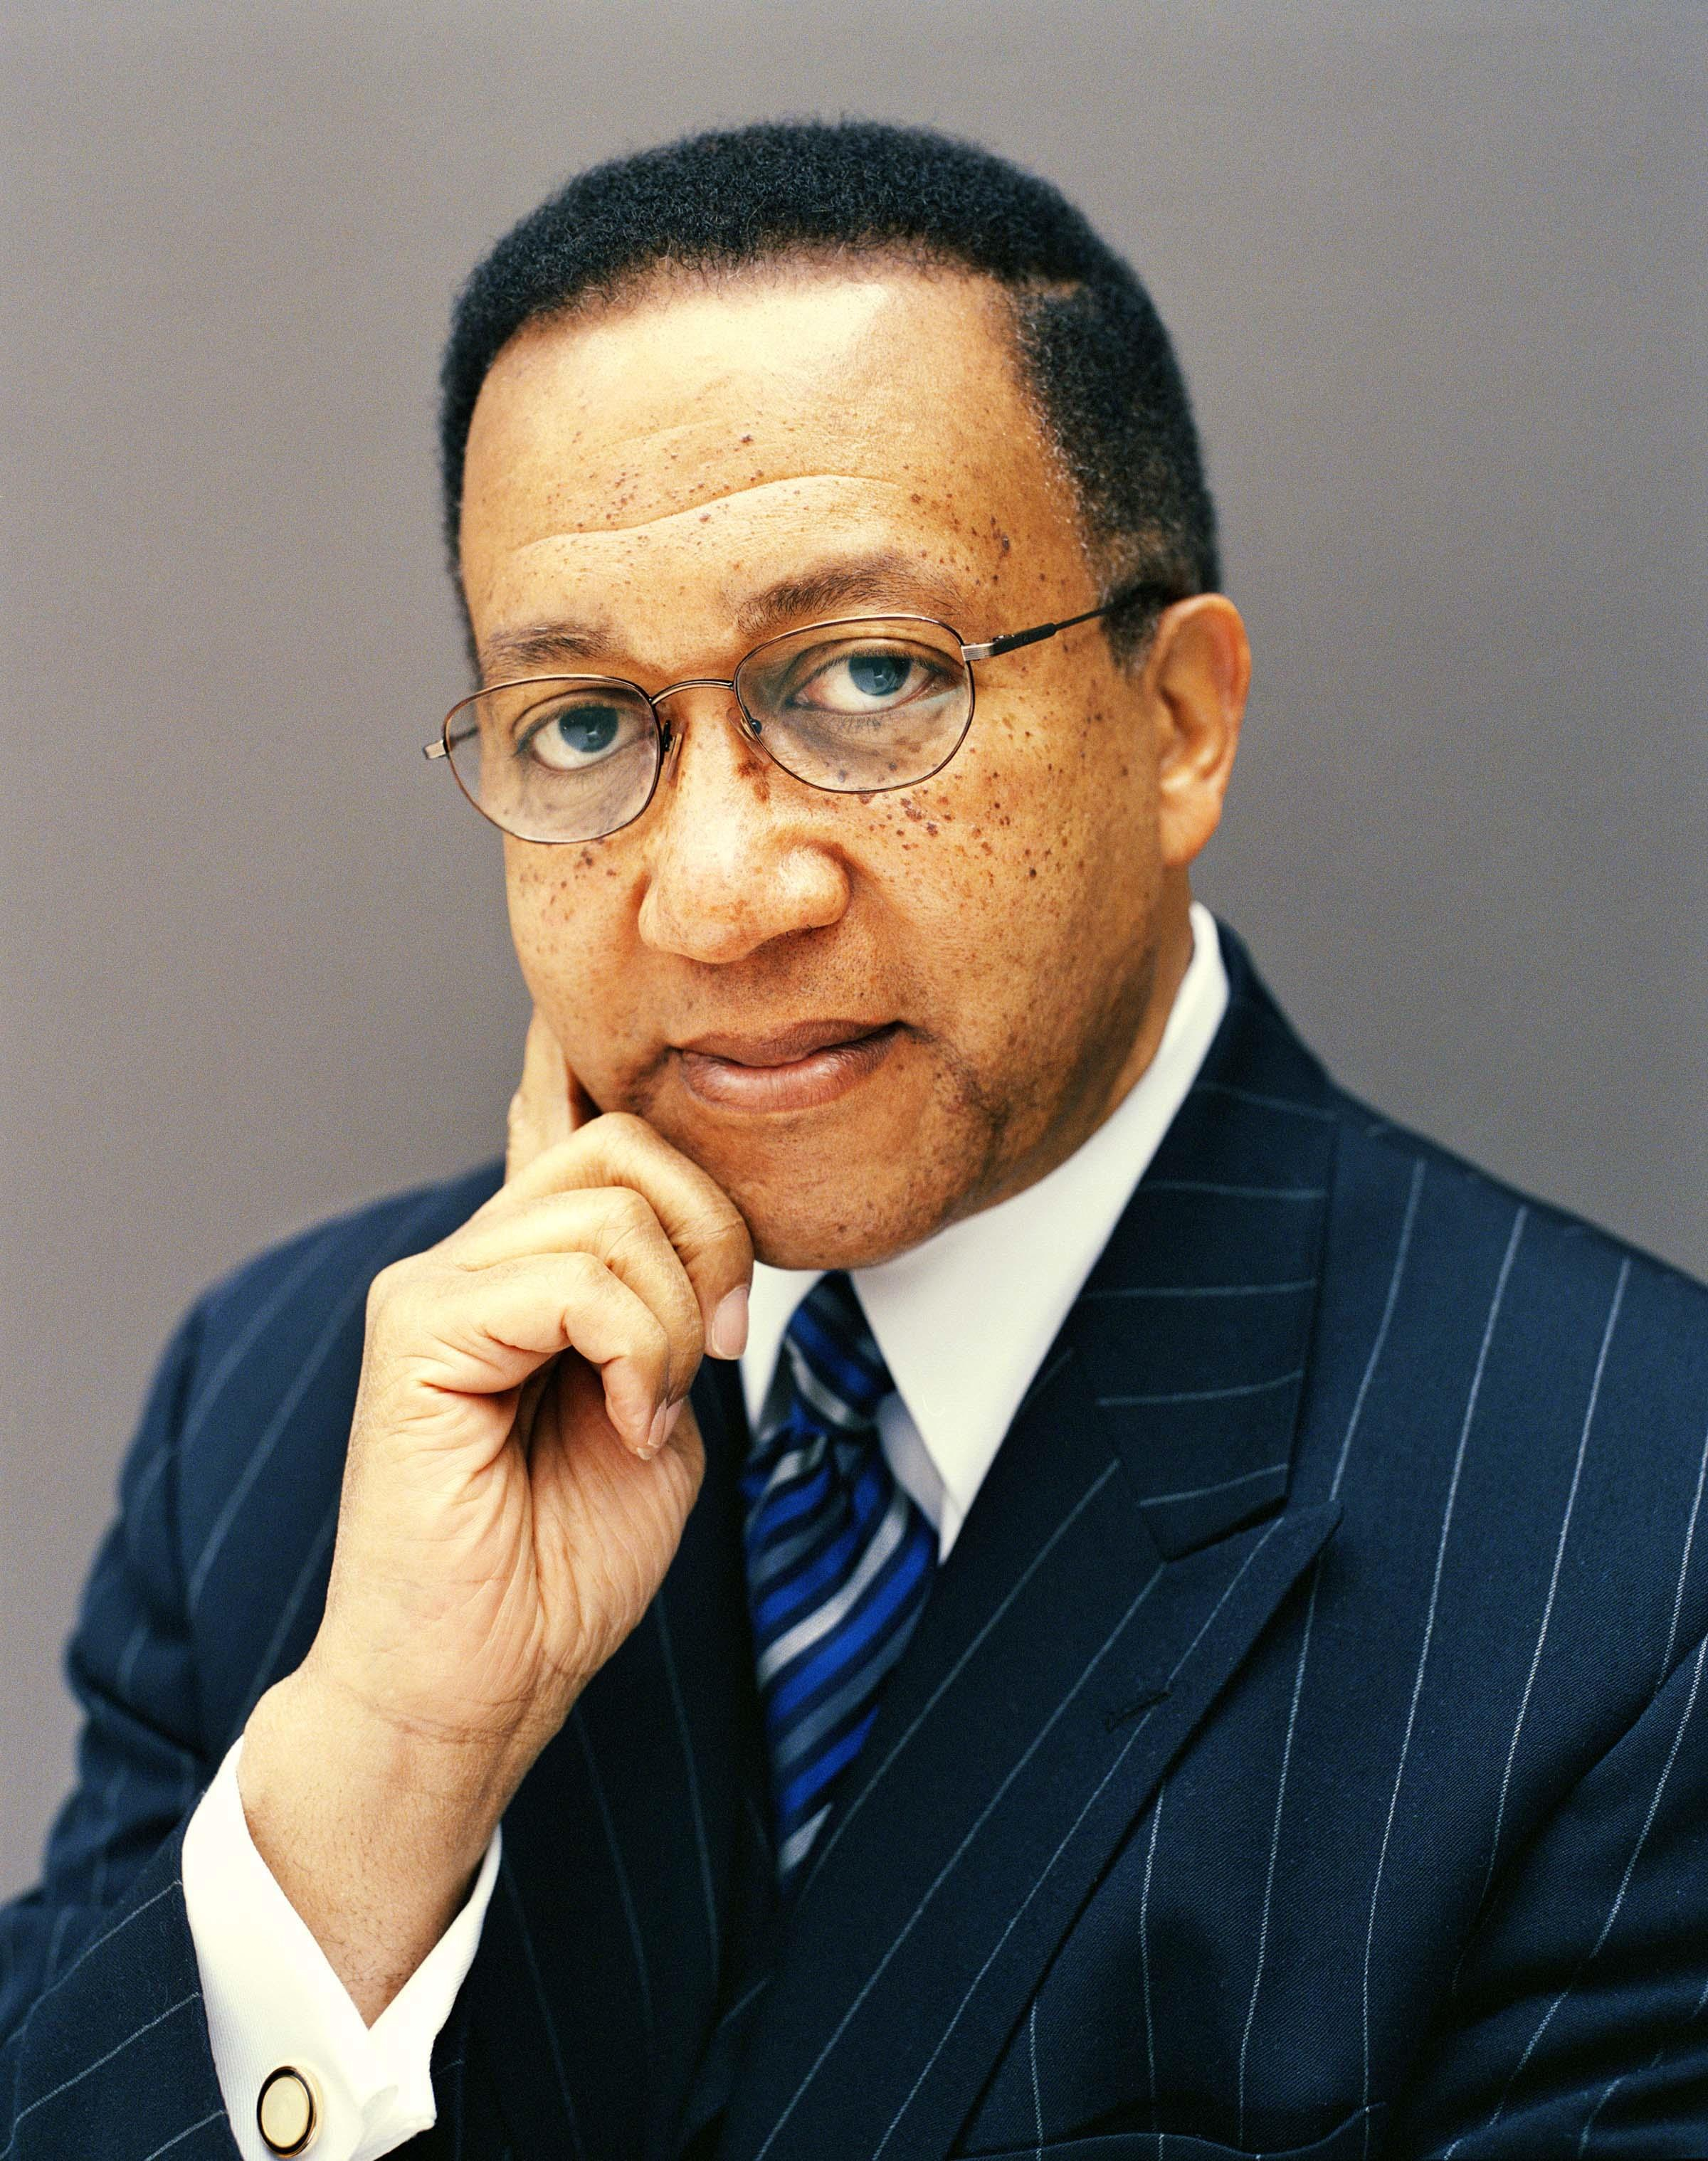 Listen to Dr. Ben Chavis today on the Carl Nelson show.